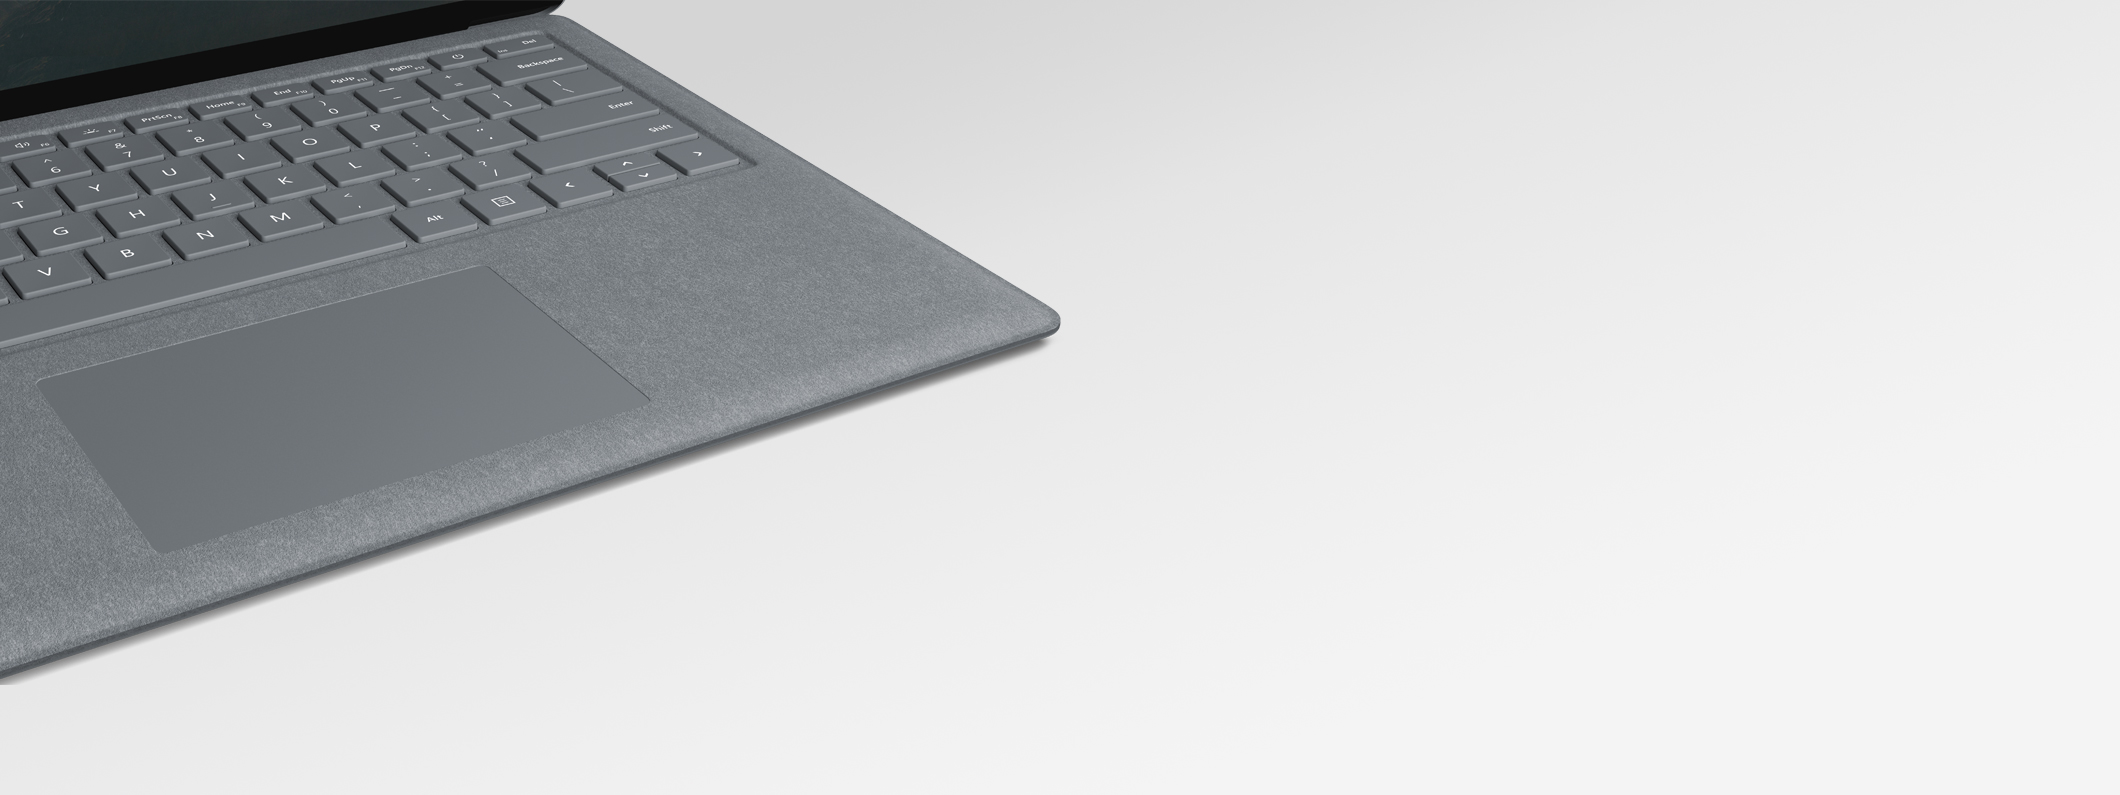 Clavier et pavé tactile du Surface Laptop 2